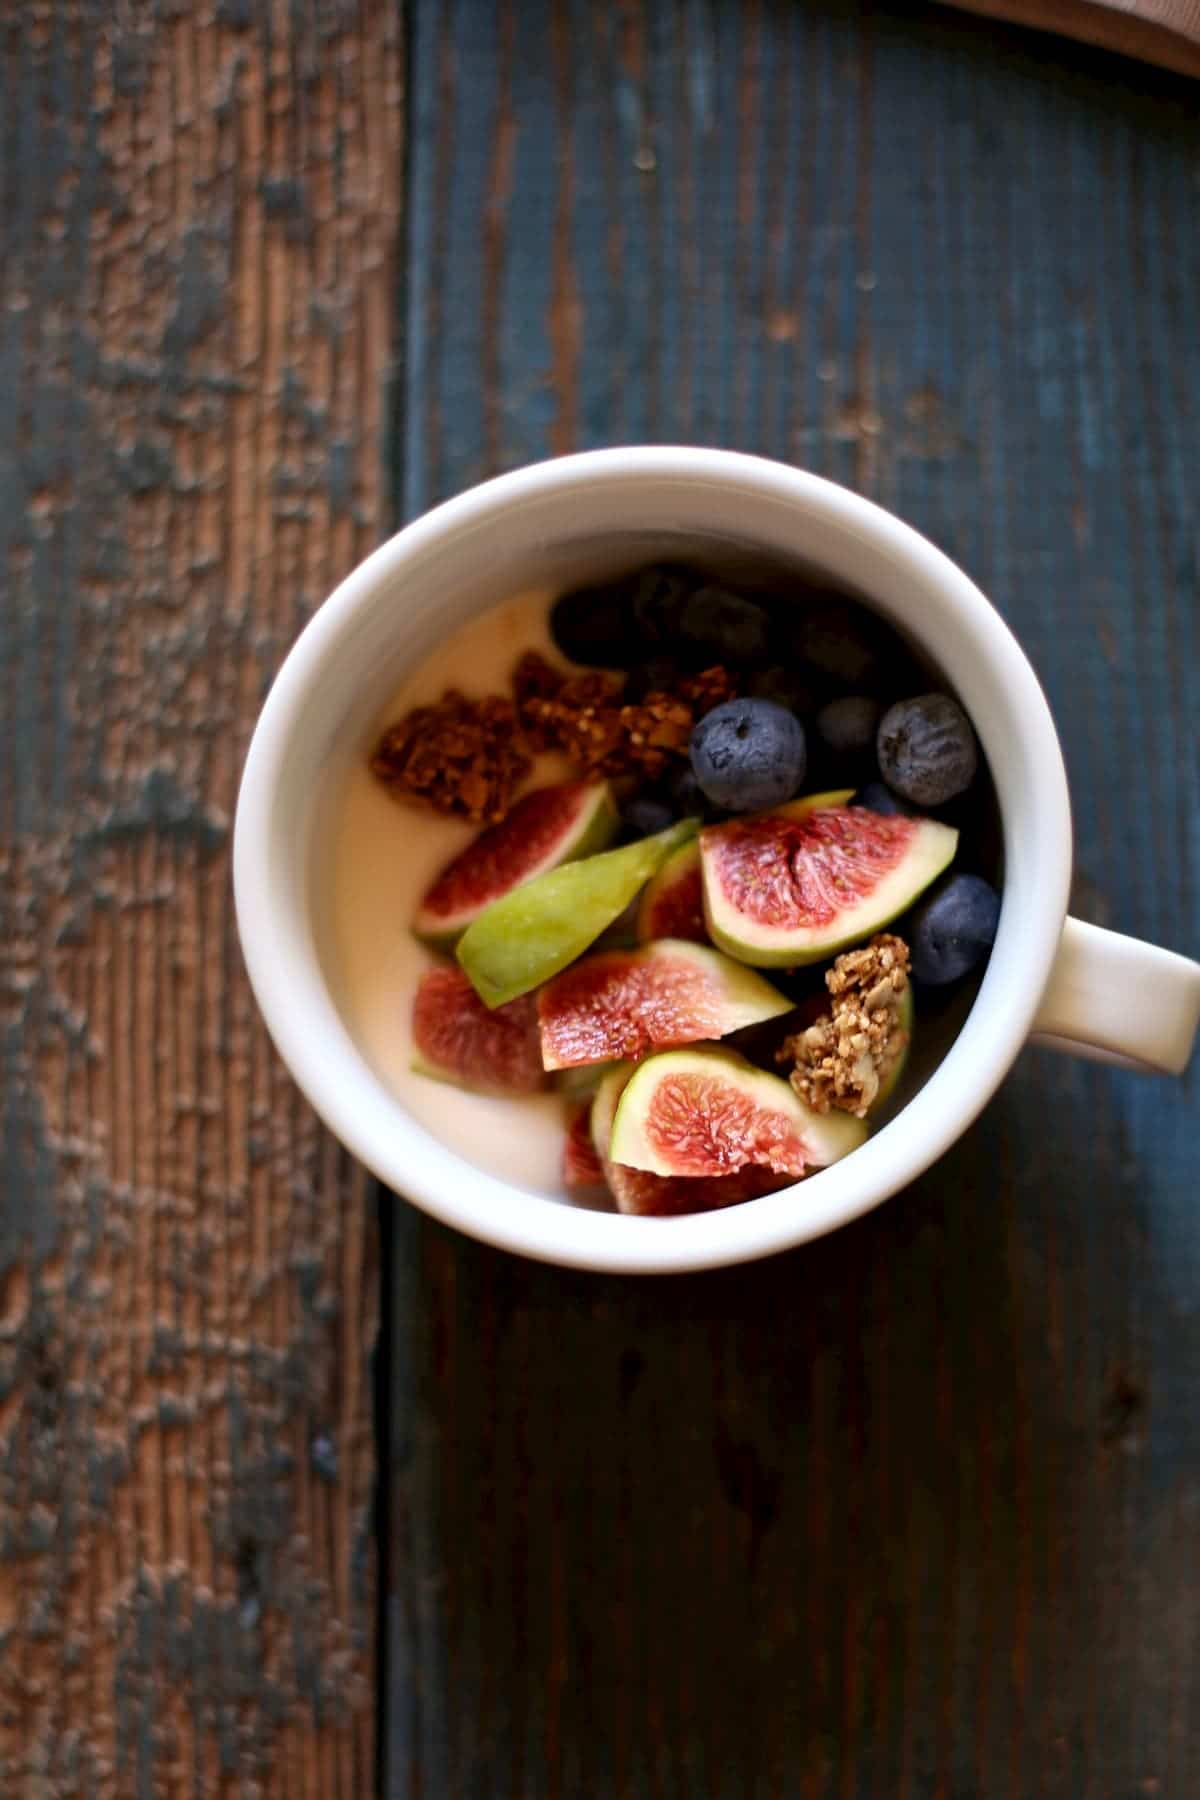 One bowl of yogurt and fresh figs on a wooden table